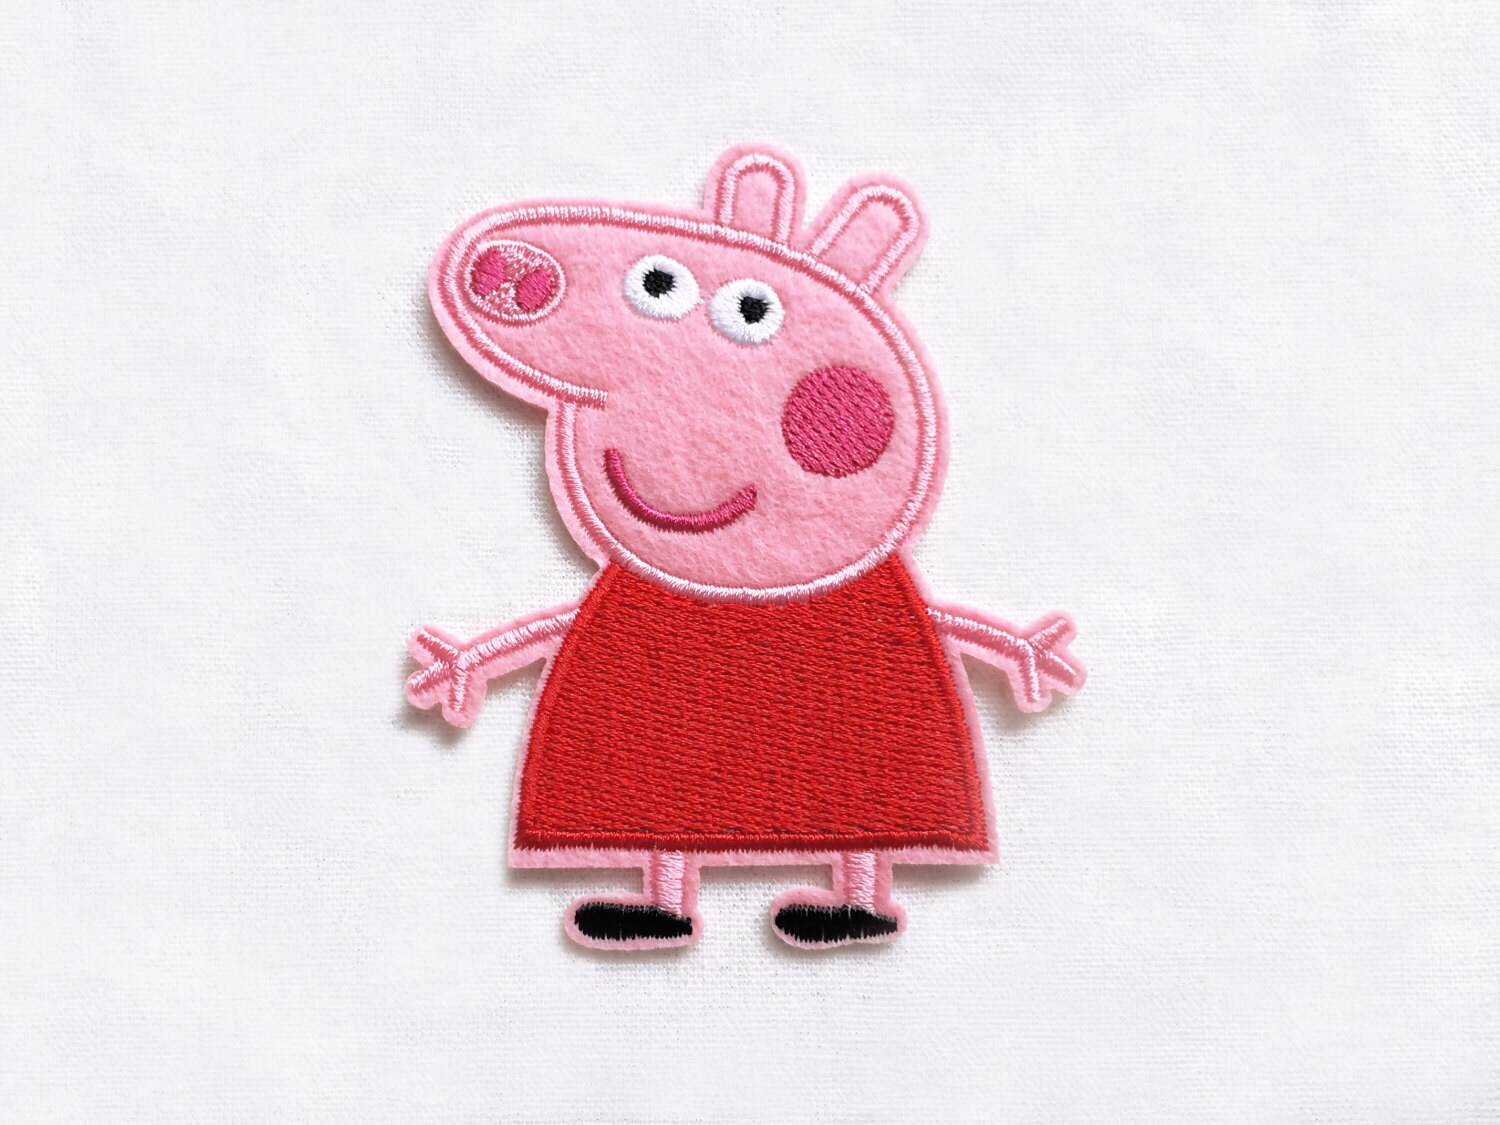 1x PEPPA PIG patch custom Iron On Embroidered Applique cartoon pink ...